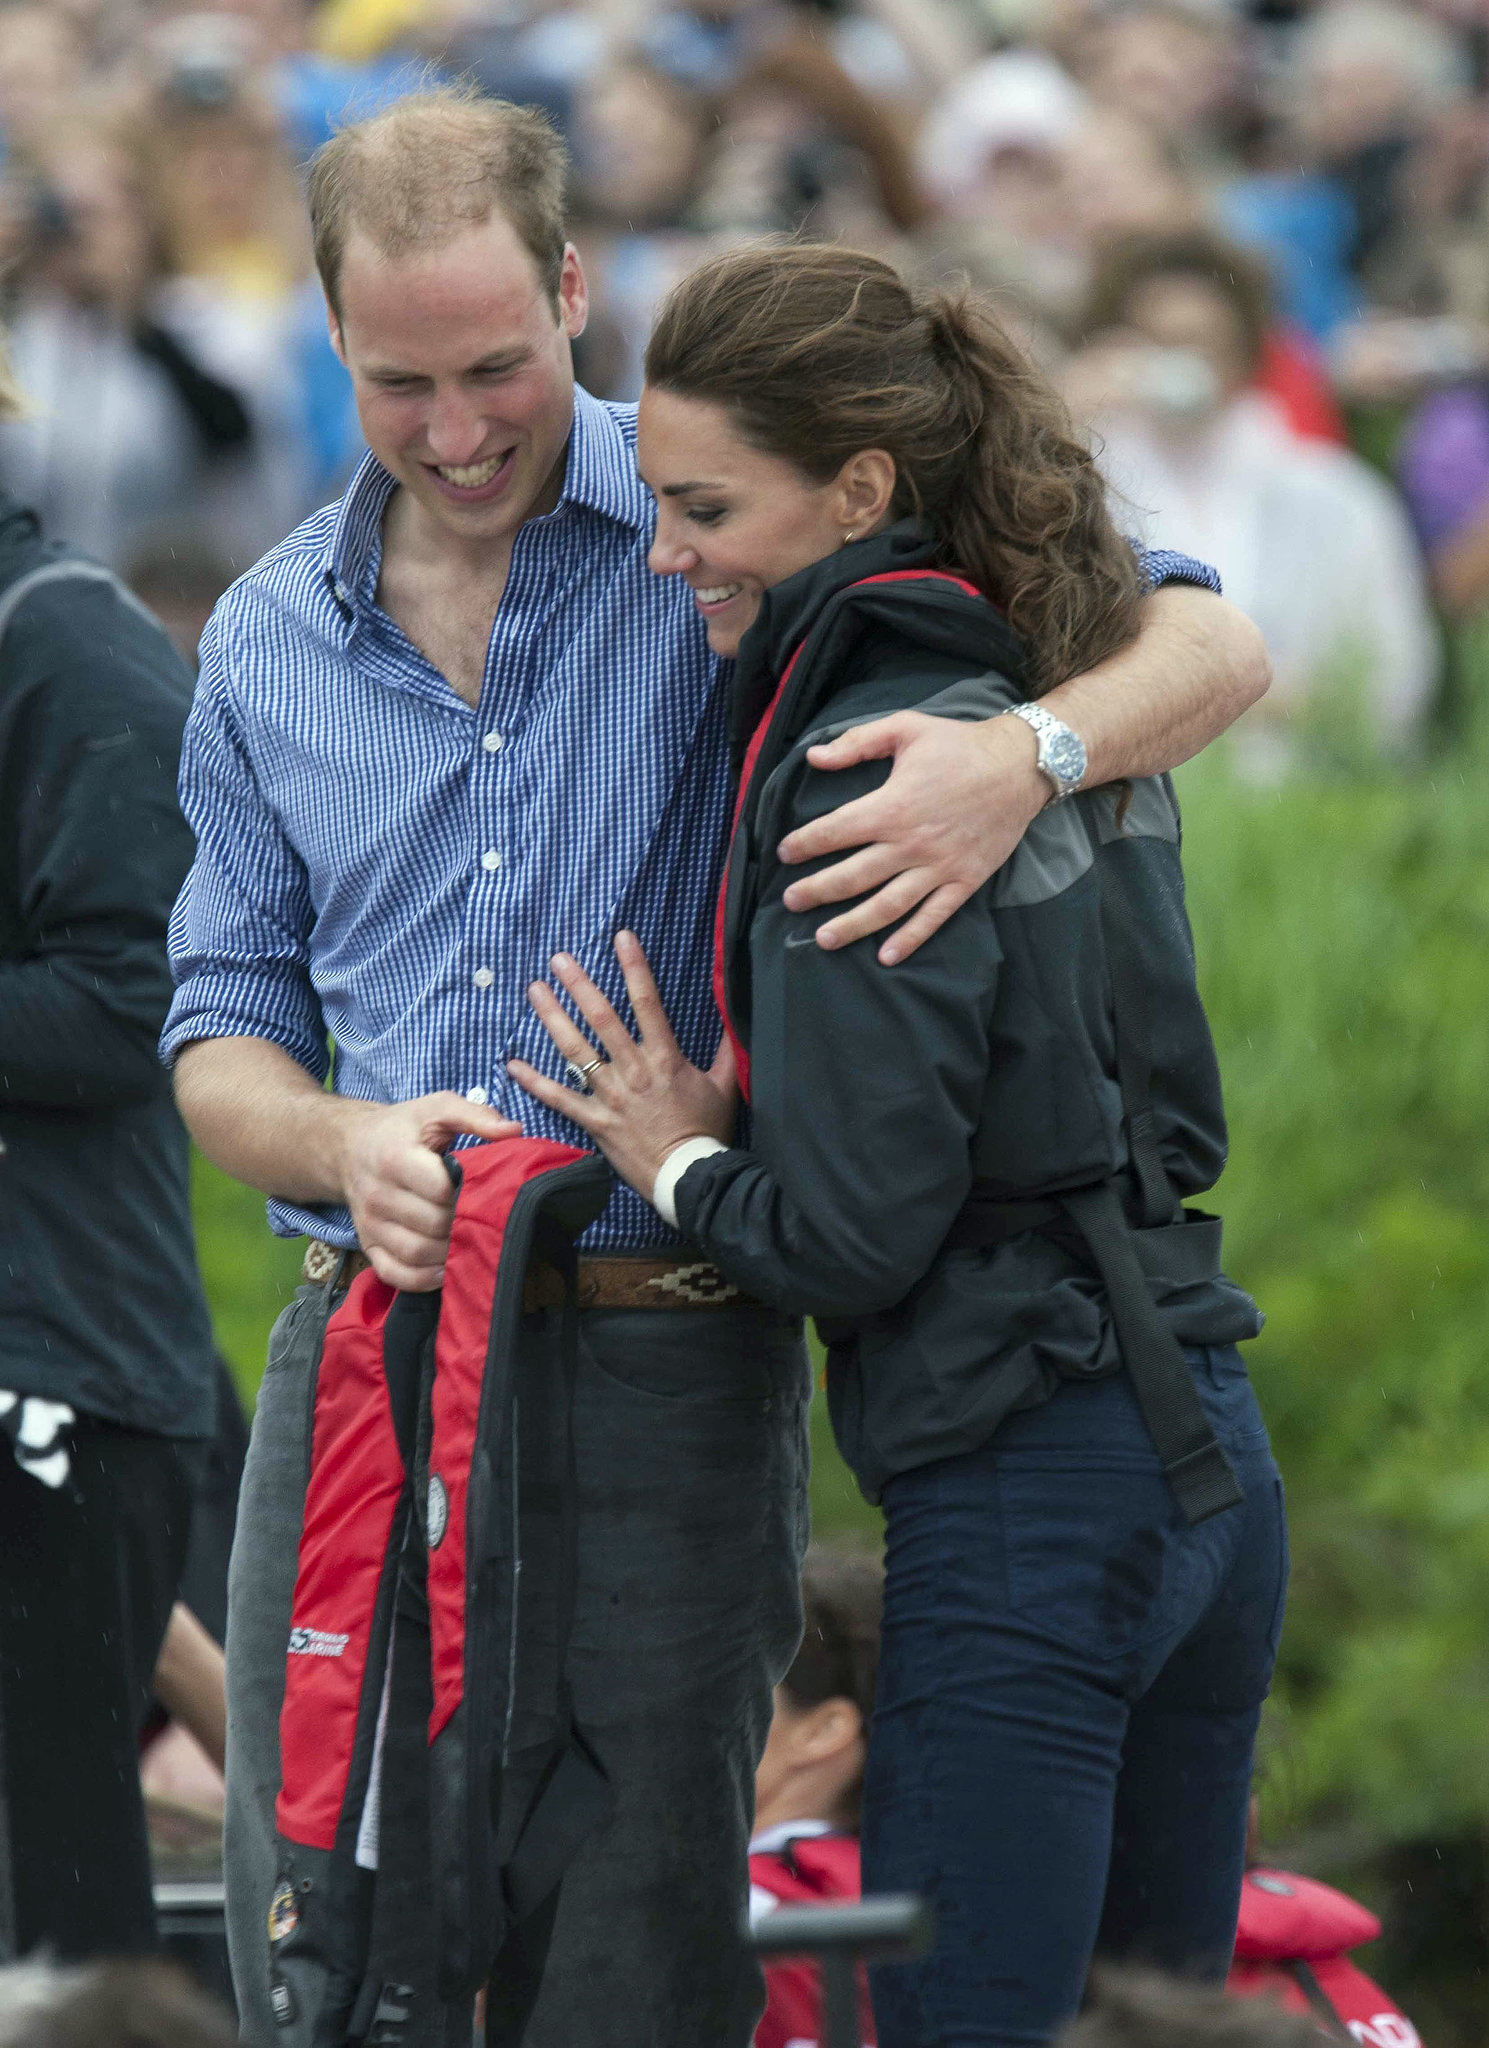 In July 2011, William wrapped Kate in a hug